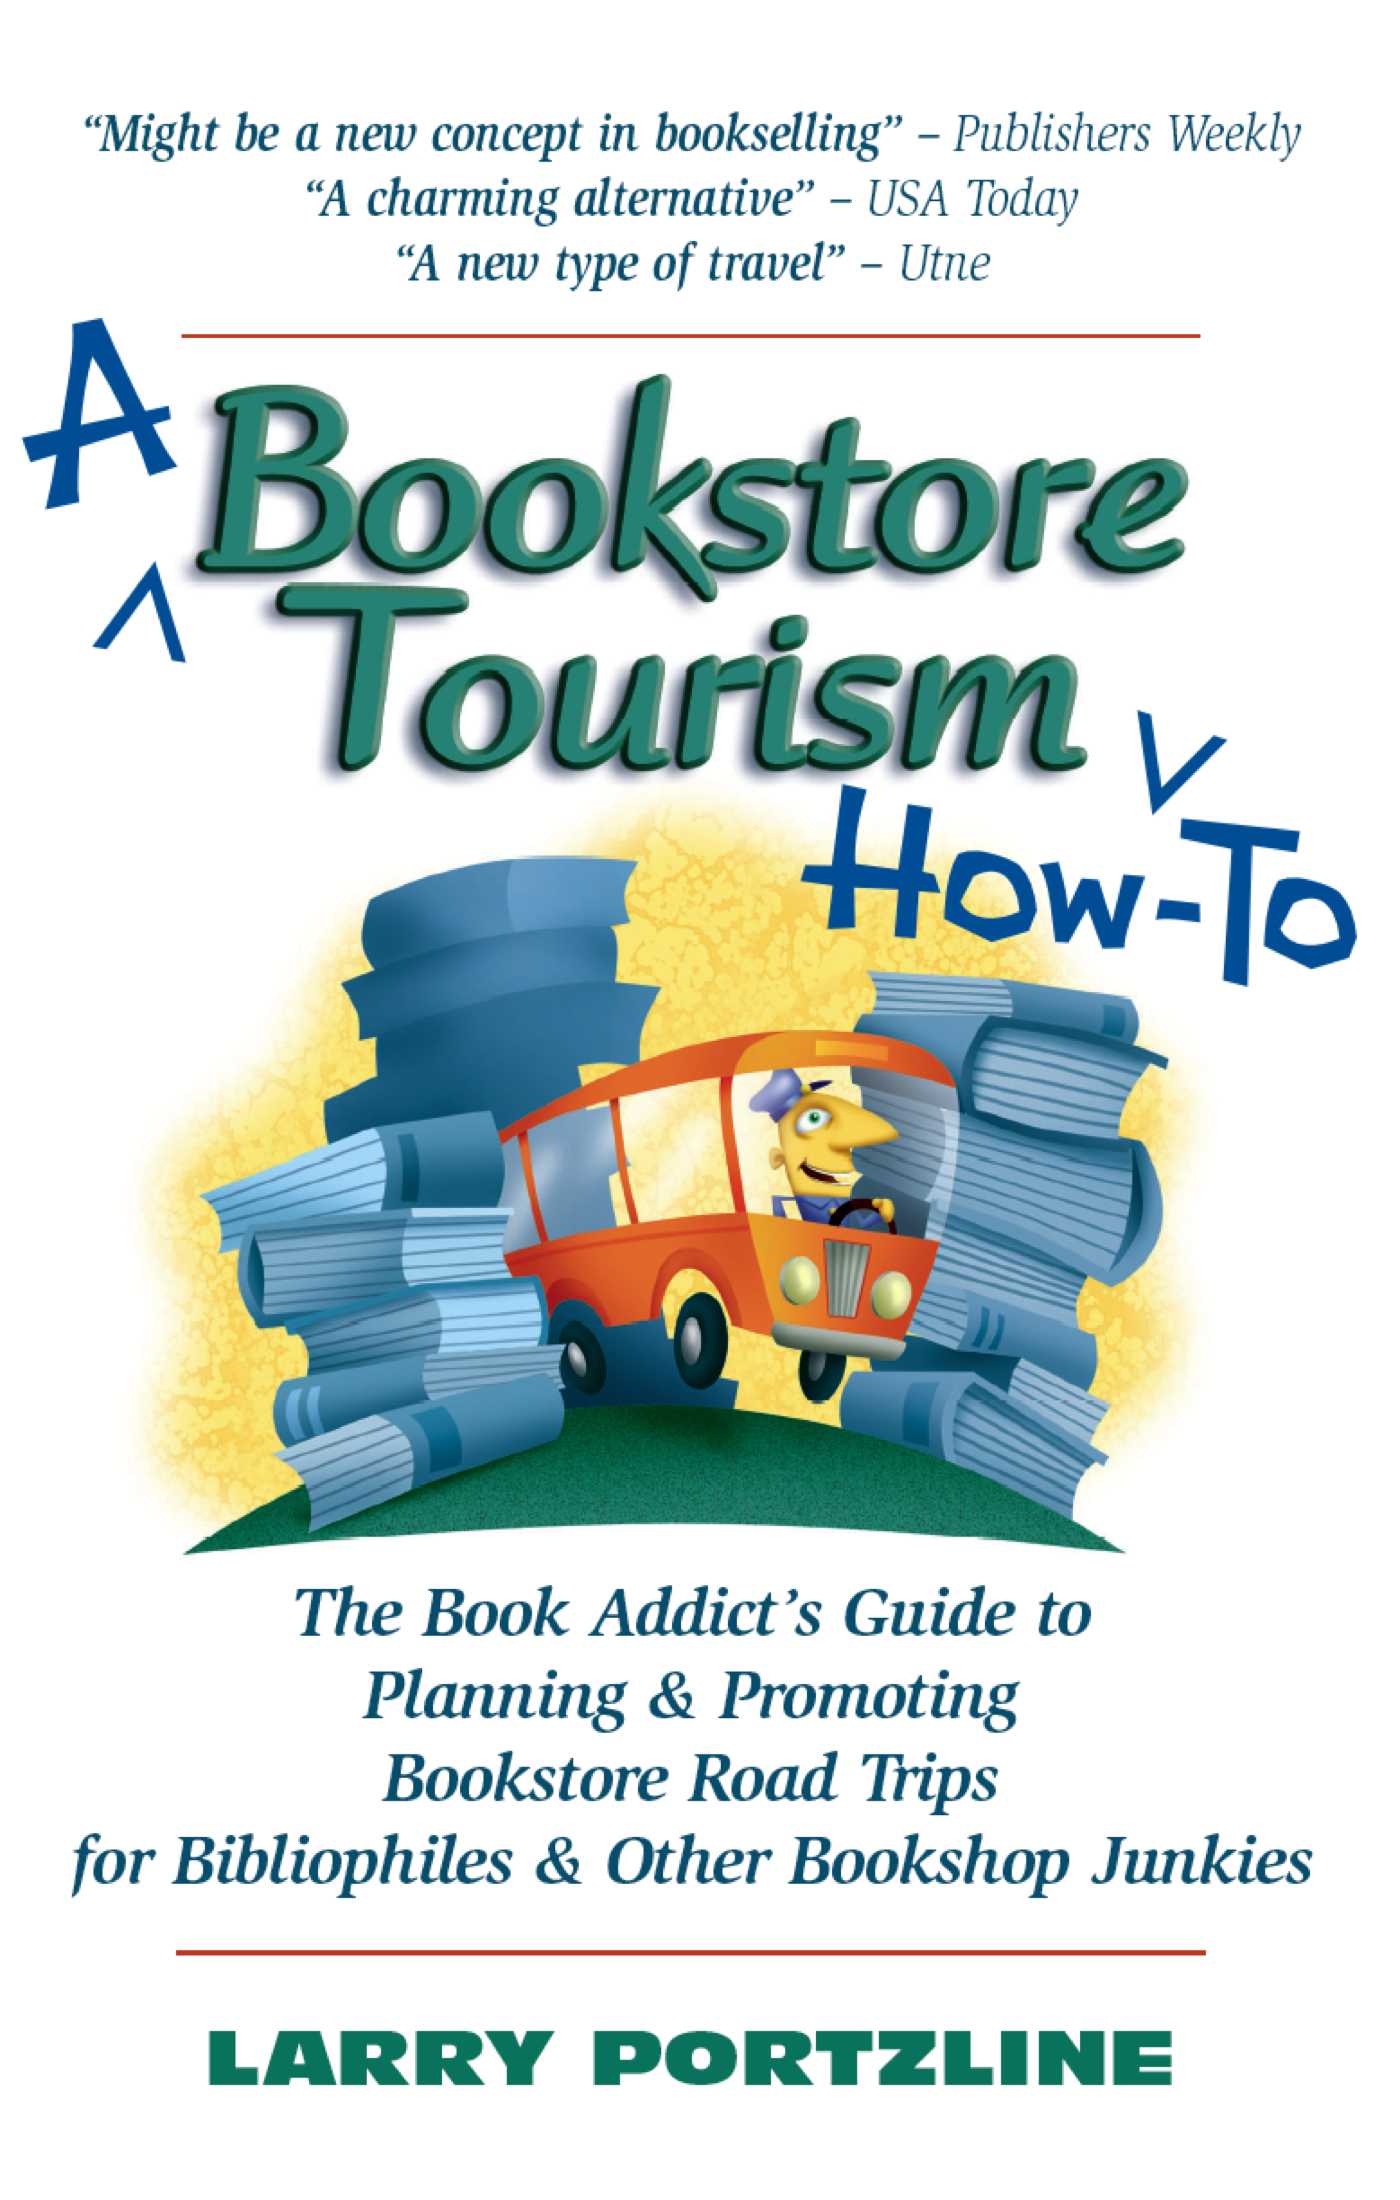 A Bookstore Tourism How-To